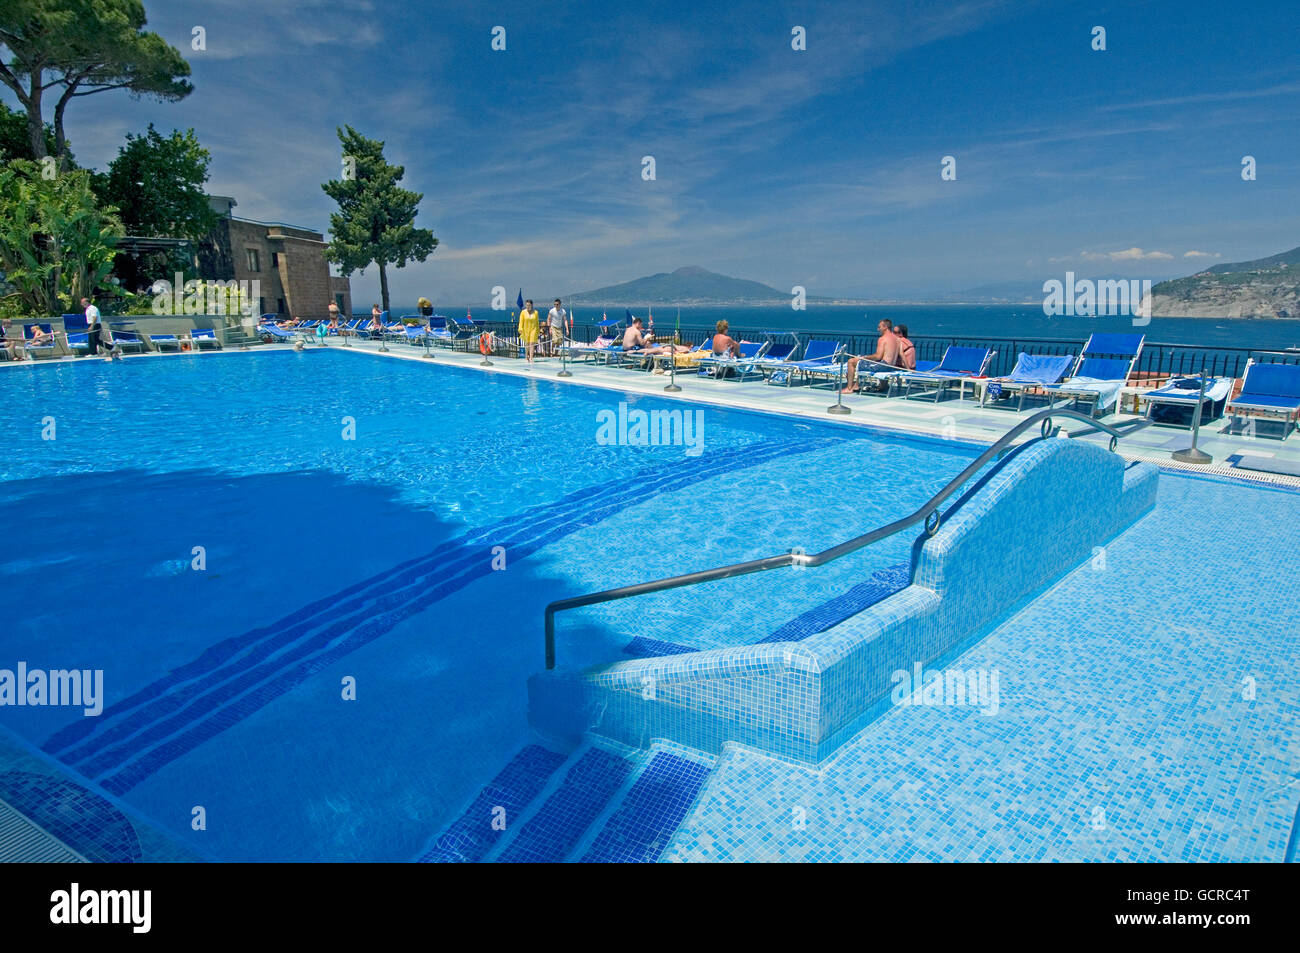 A swimming pool at the bristol hotel in sorrento near - Hotel in sorrento italy with swimming pool ...